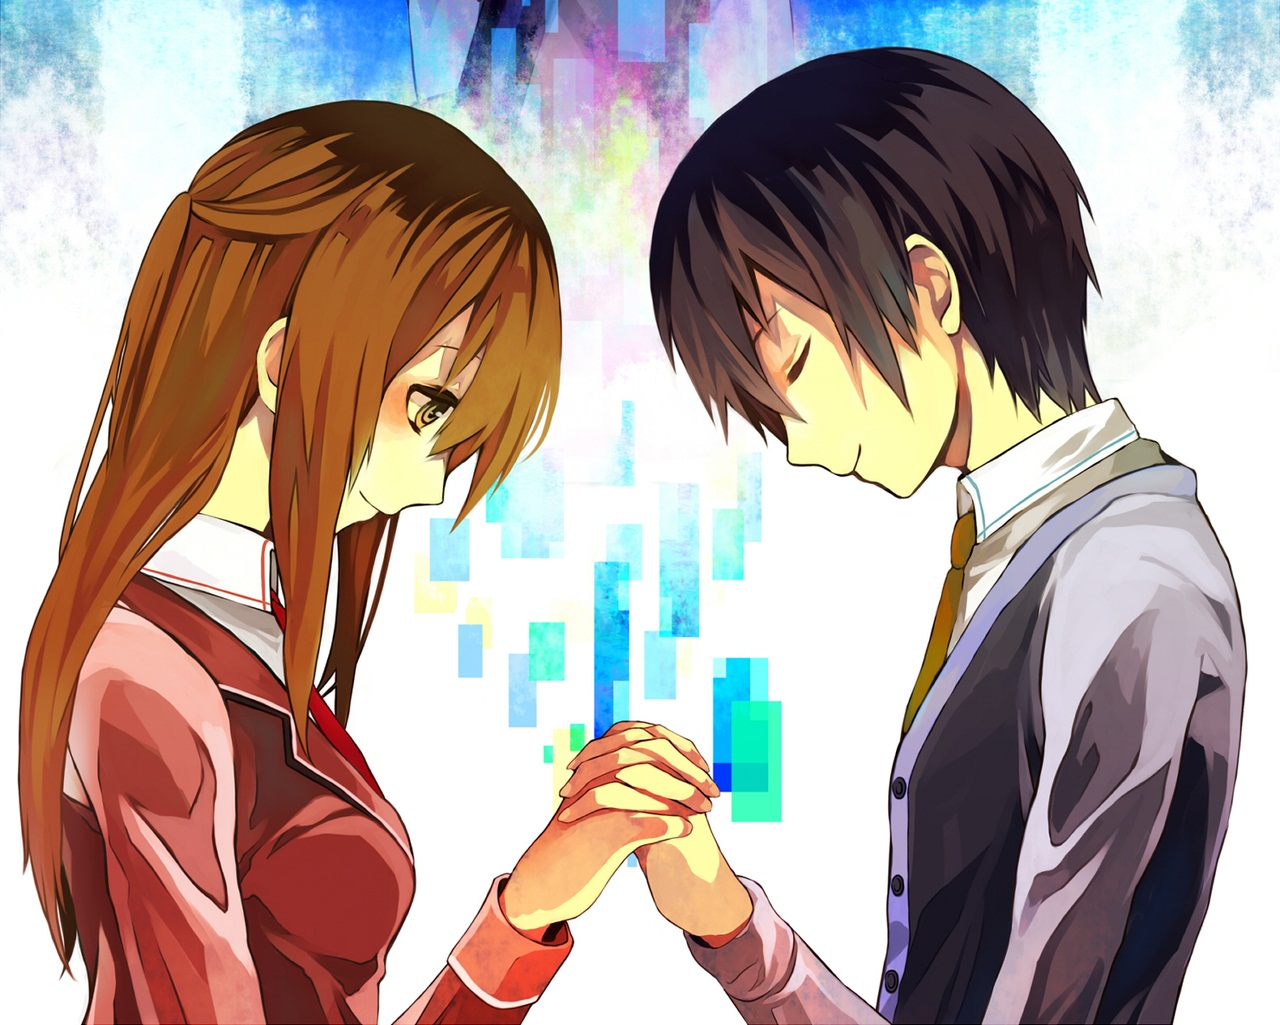 Sword Art Online  Asuna And Kirito  One Of The Cutest Anime